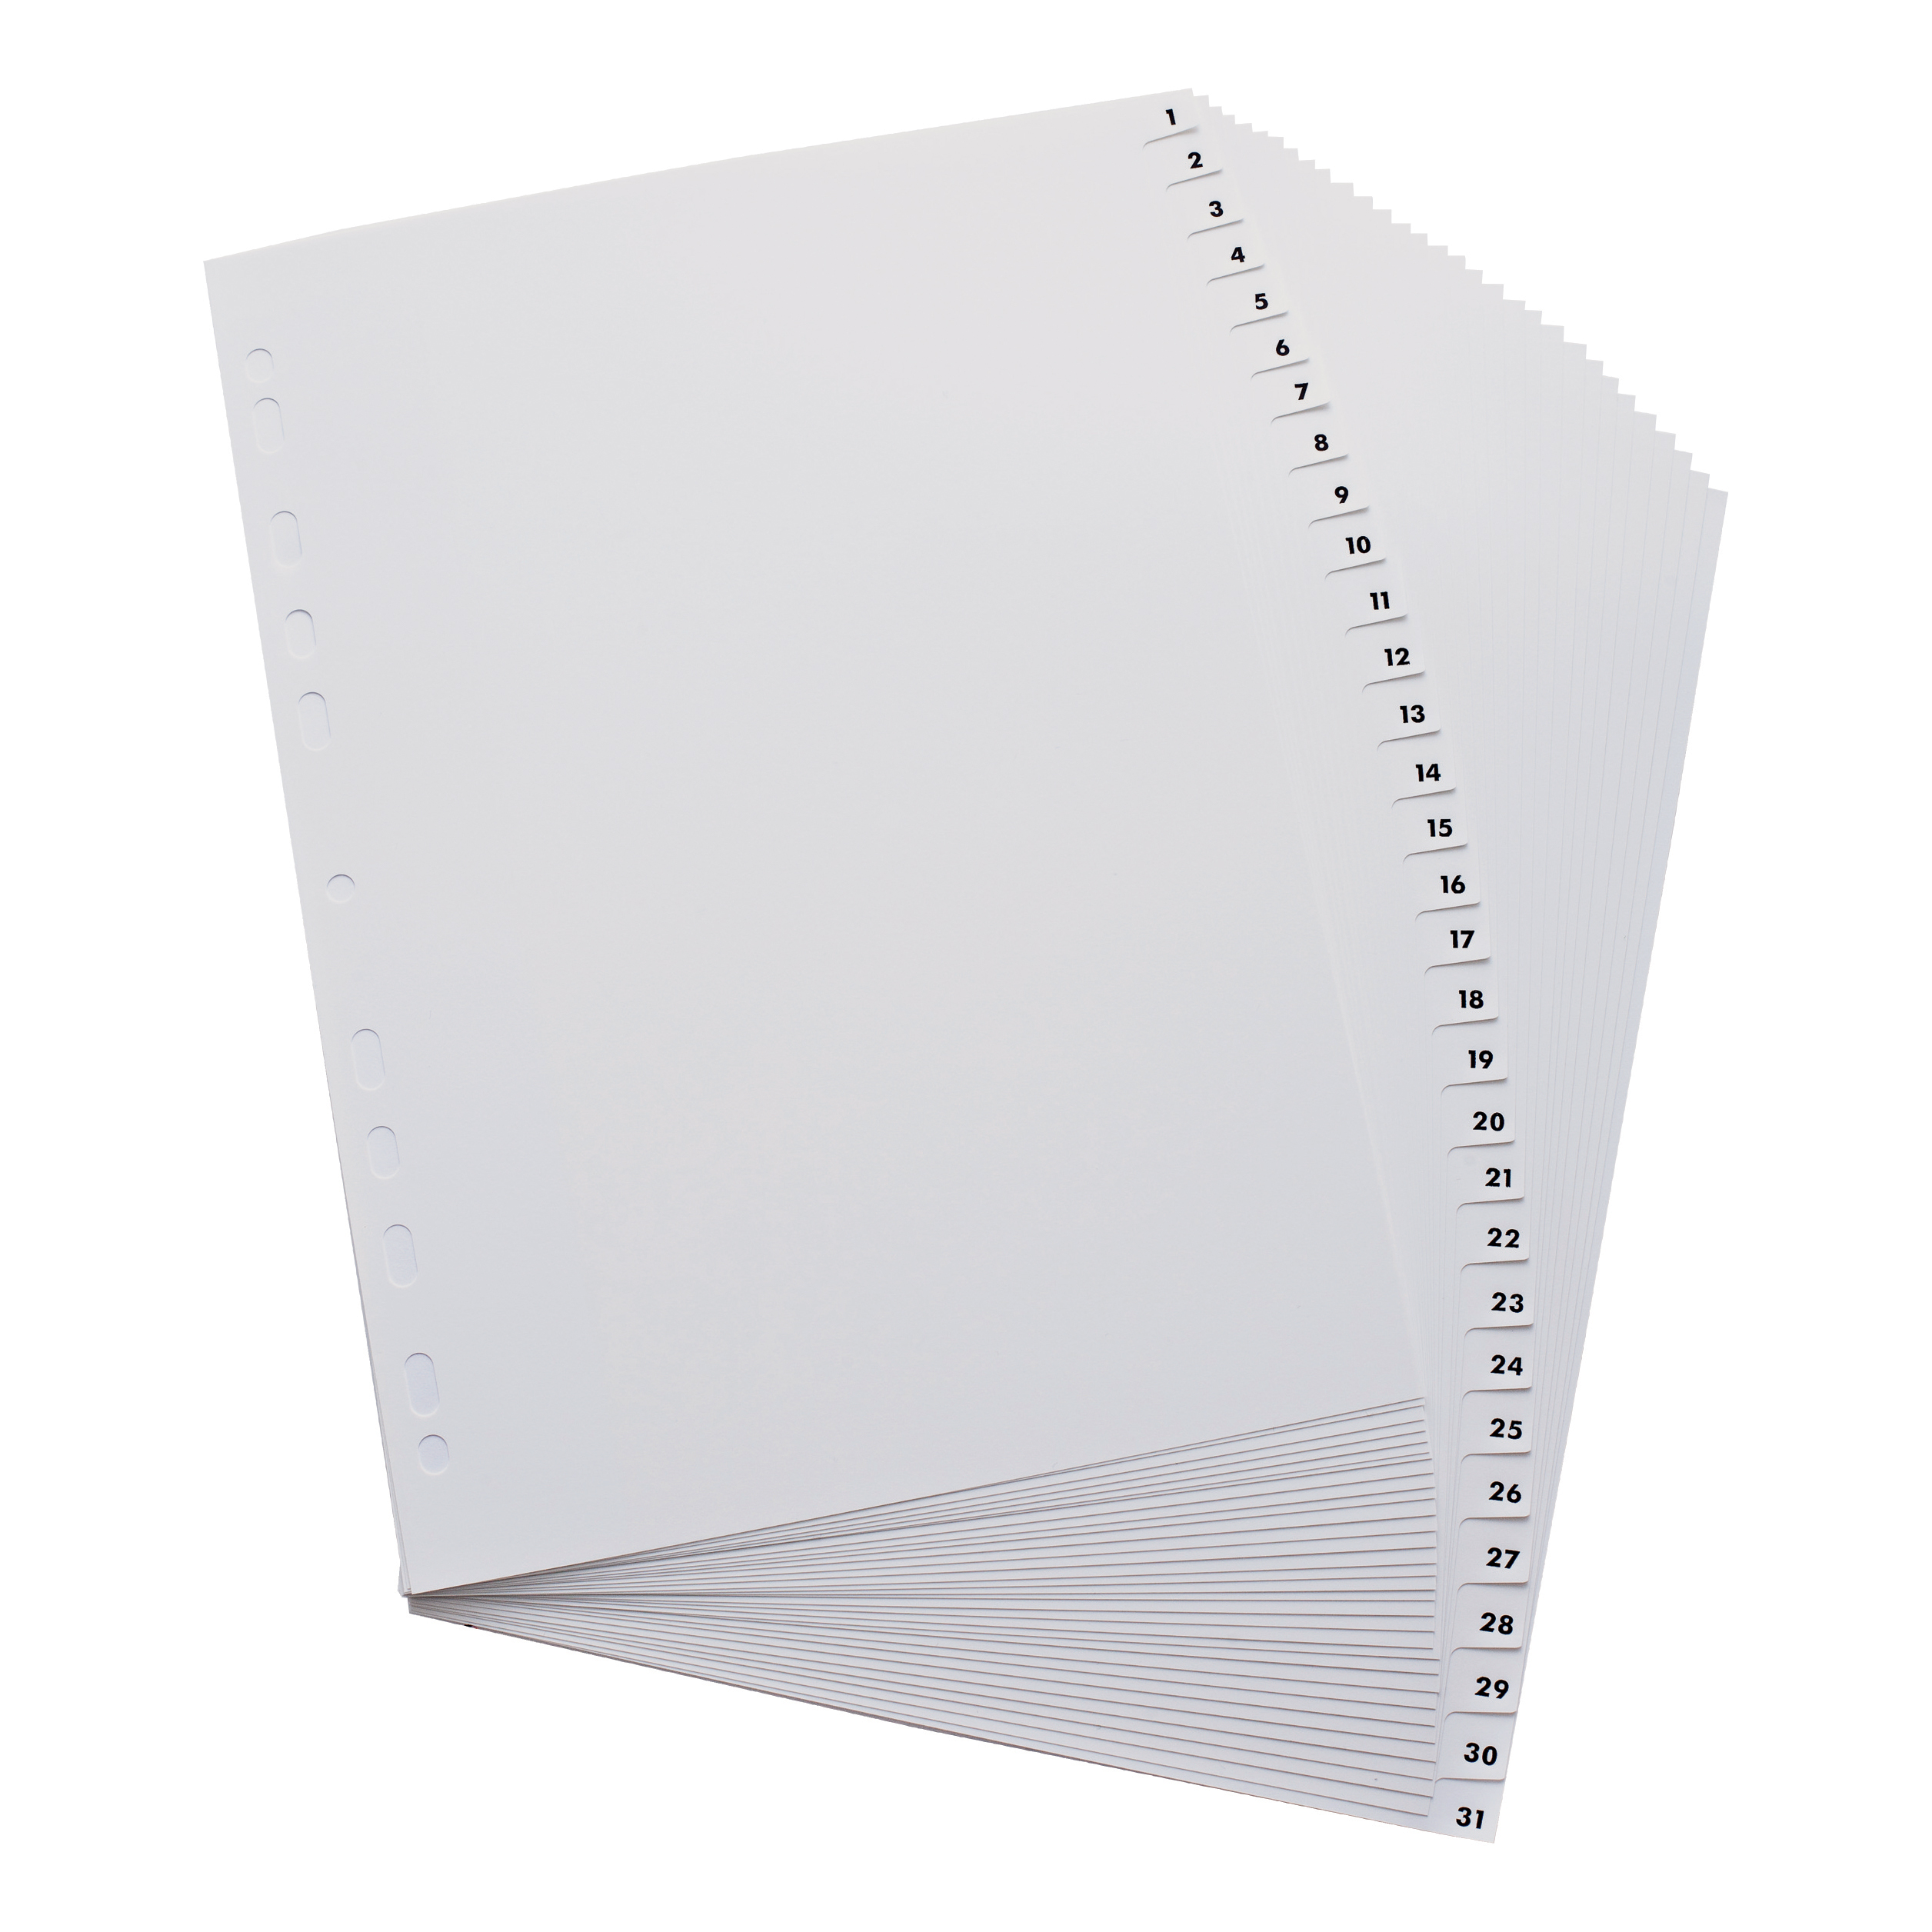 Elba Index 1-31 Polypropylene Multipunched Reinforced Holes 120 Micron A4 White Ref 100204793